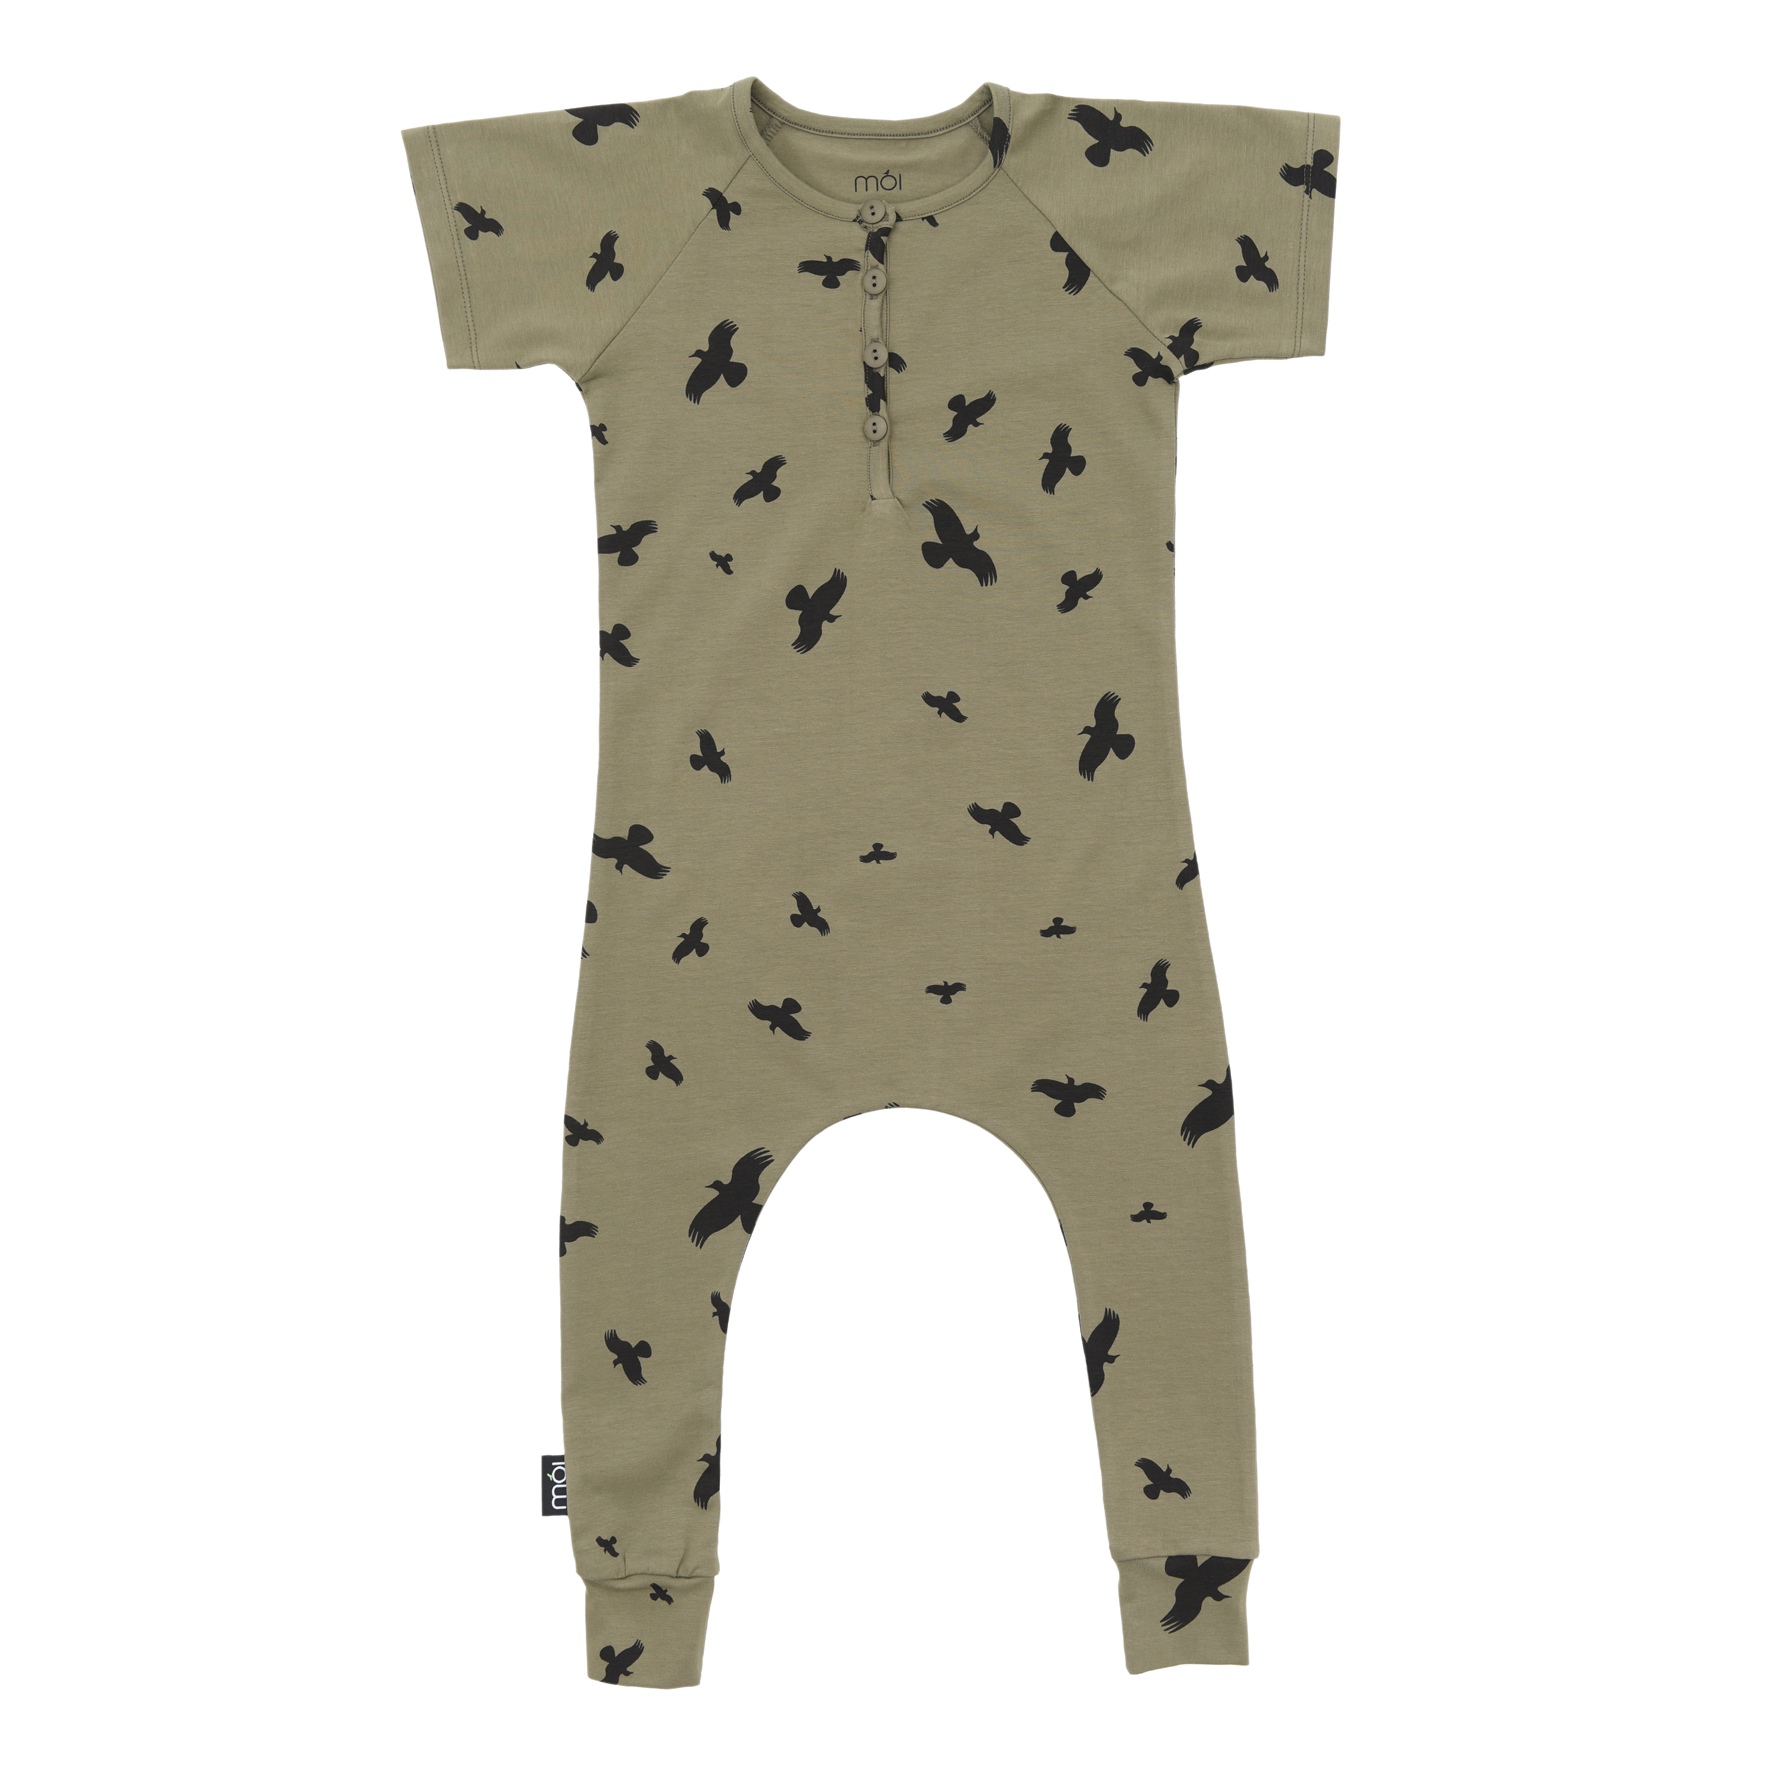 Pepe&Nika Pepe and Nika MÓI Iceland Little Apparel Baby sleeveless Overall Avocado Raven organic cotton olive green comfortable print funky hipster